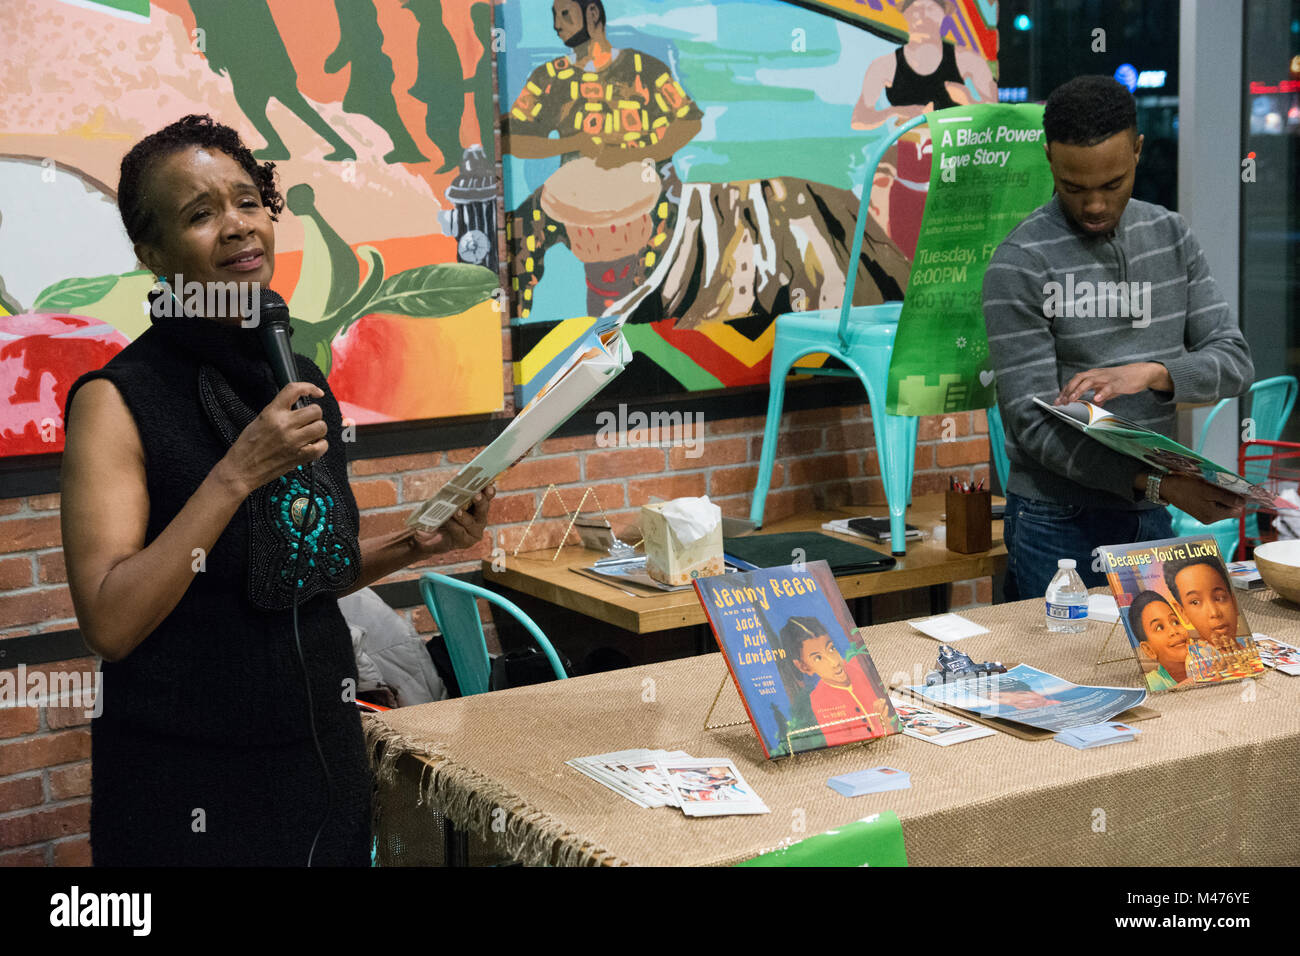 New York, USA. 13th February, 2018. Irene Smalls, African-American storyteller and author of children's books, - Stock Image